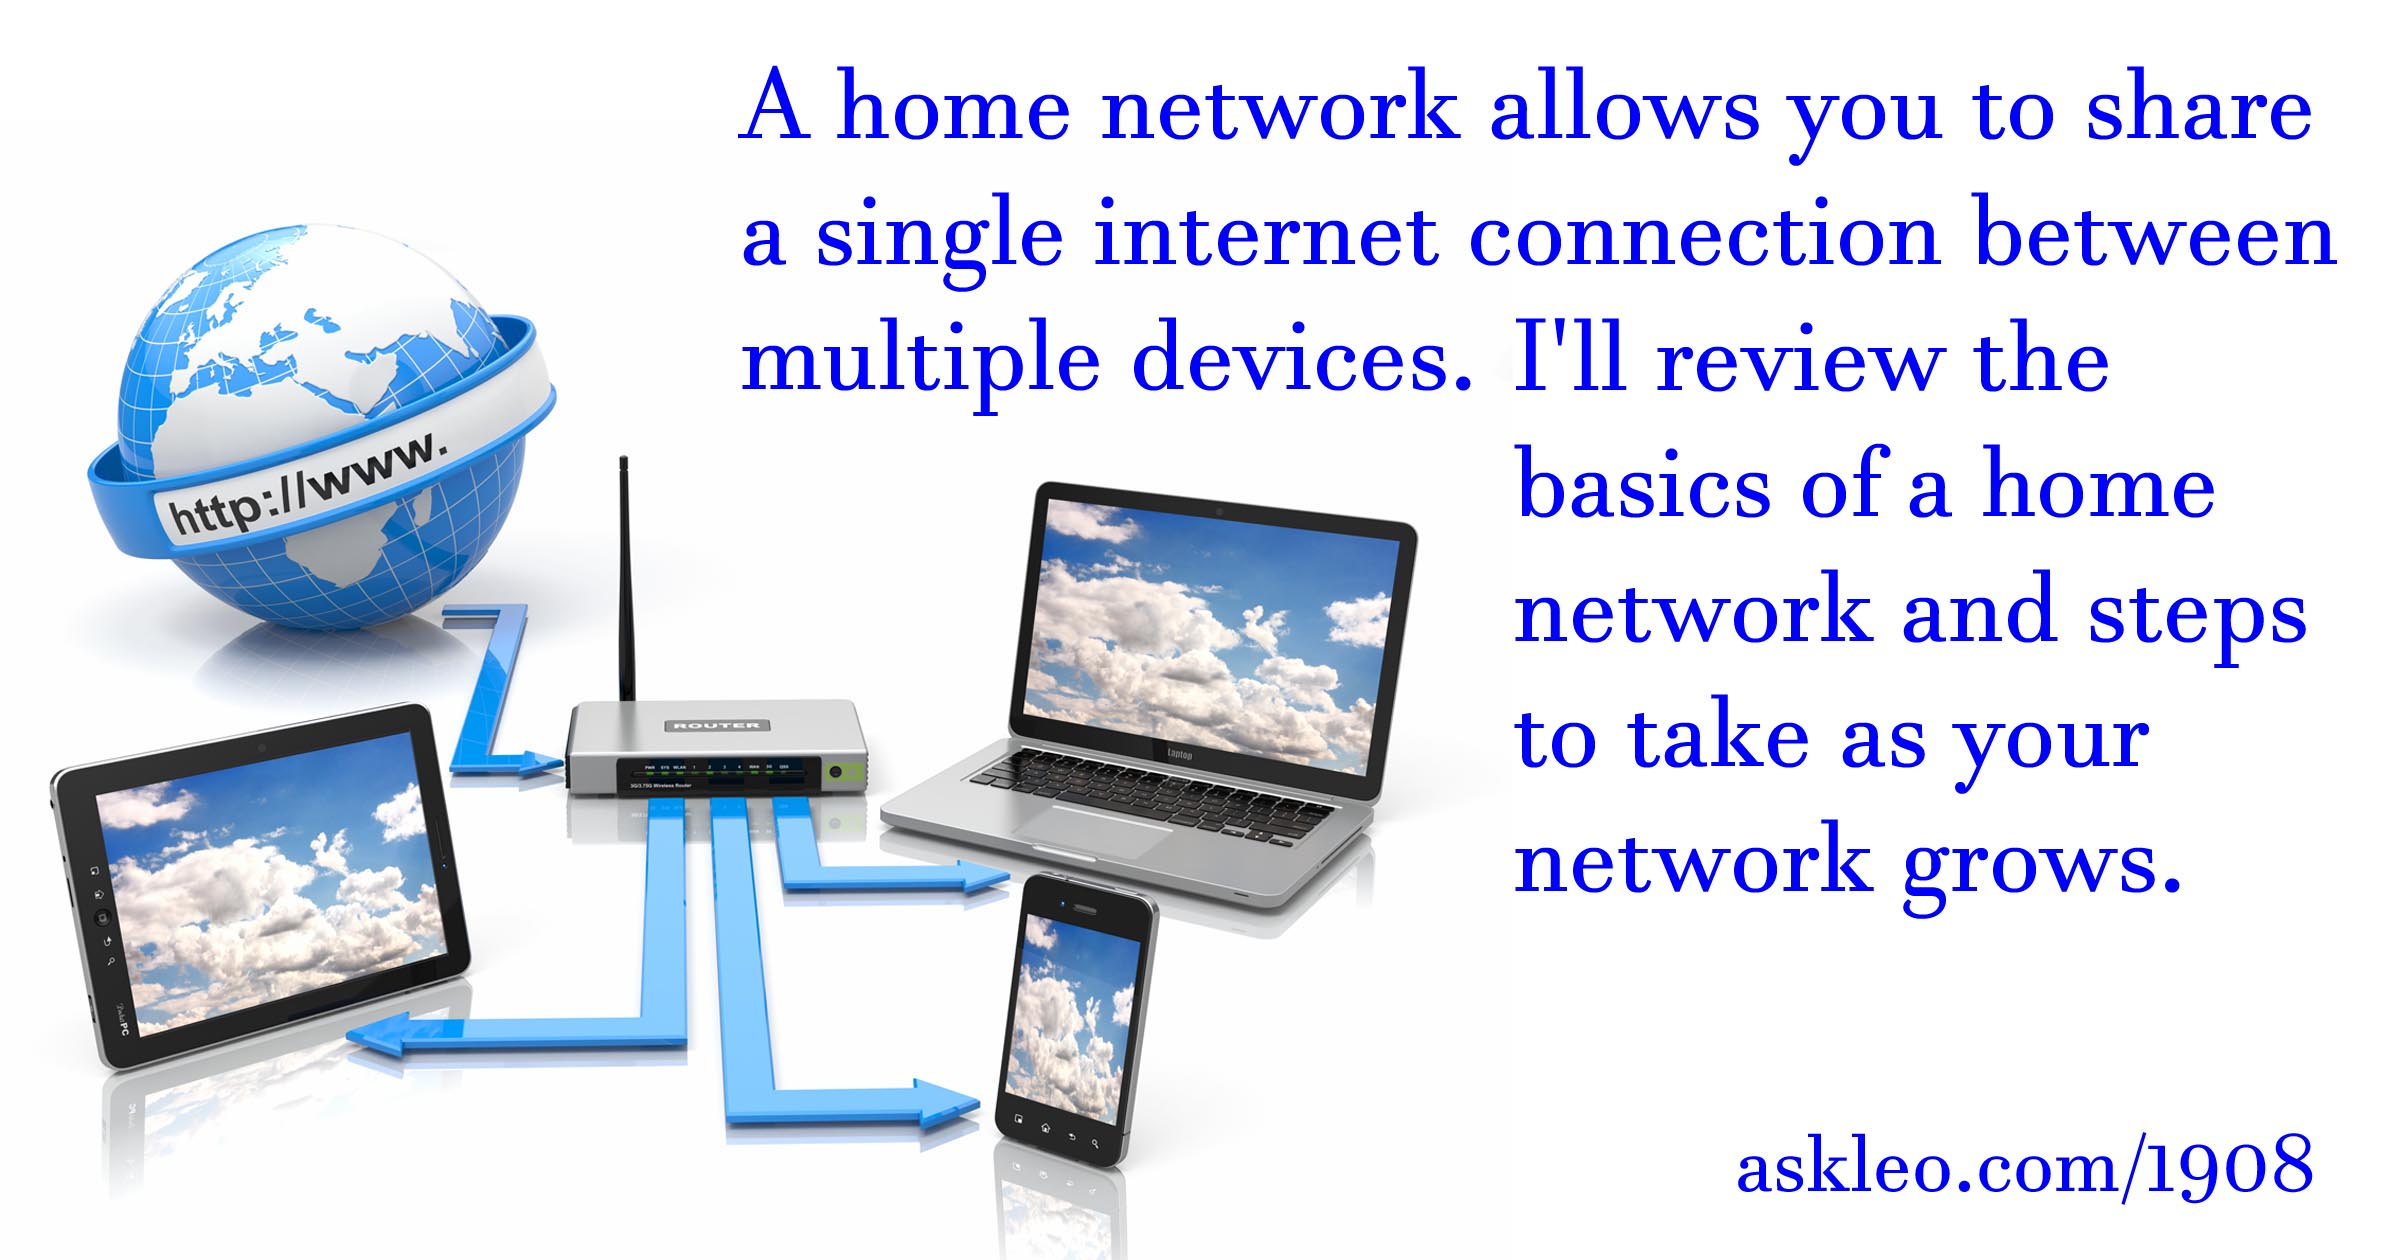 How Should I Set Up My Home Network?